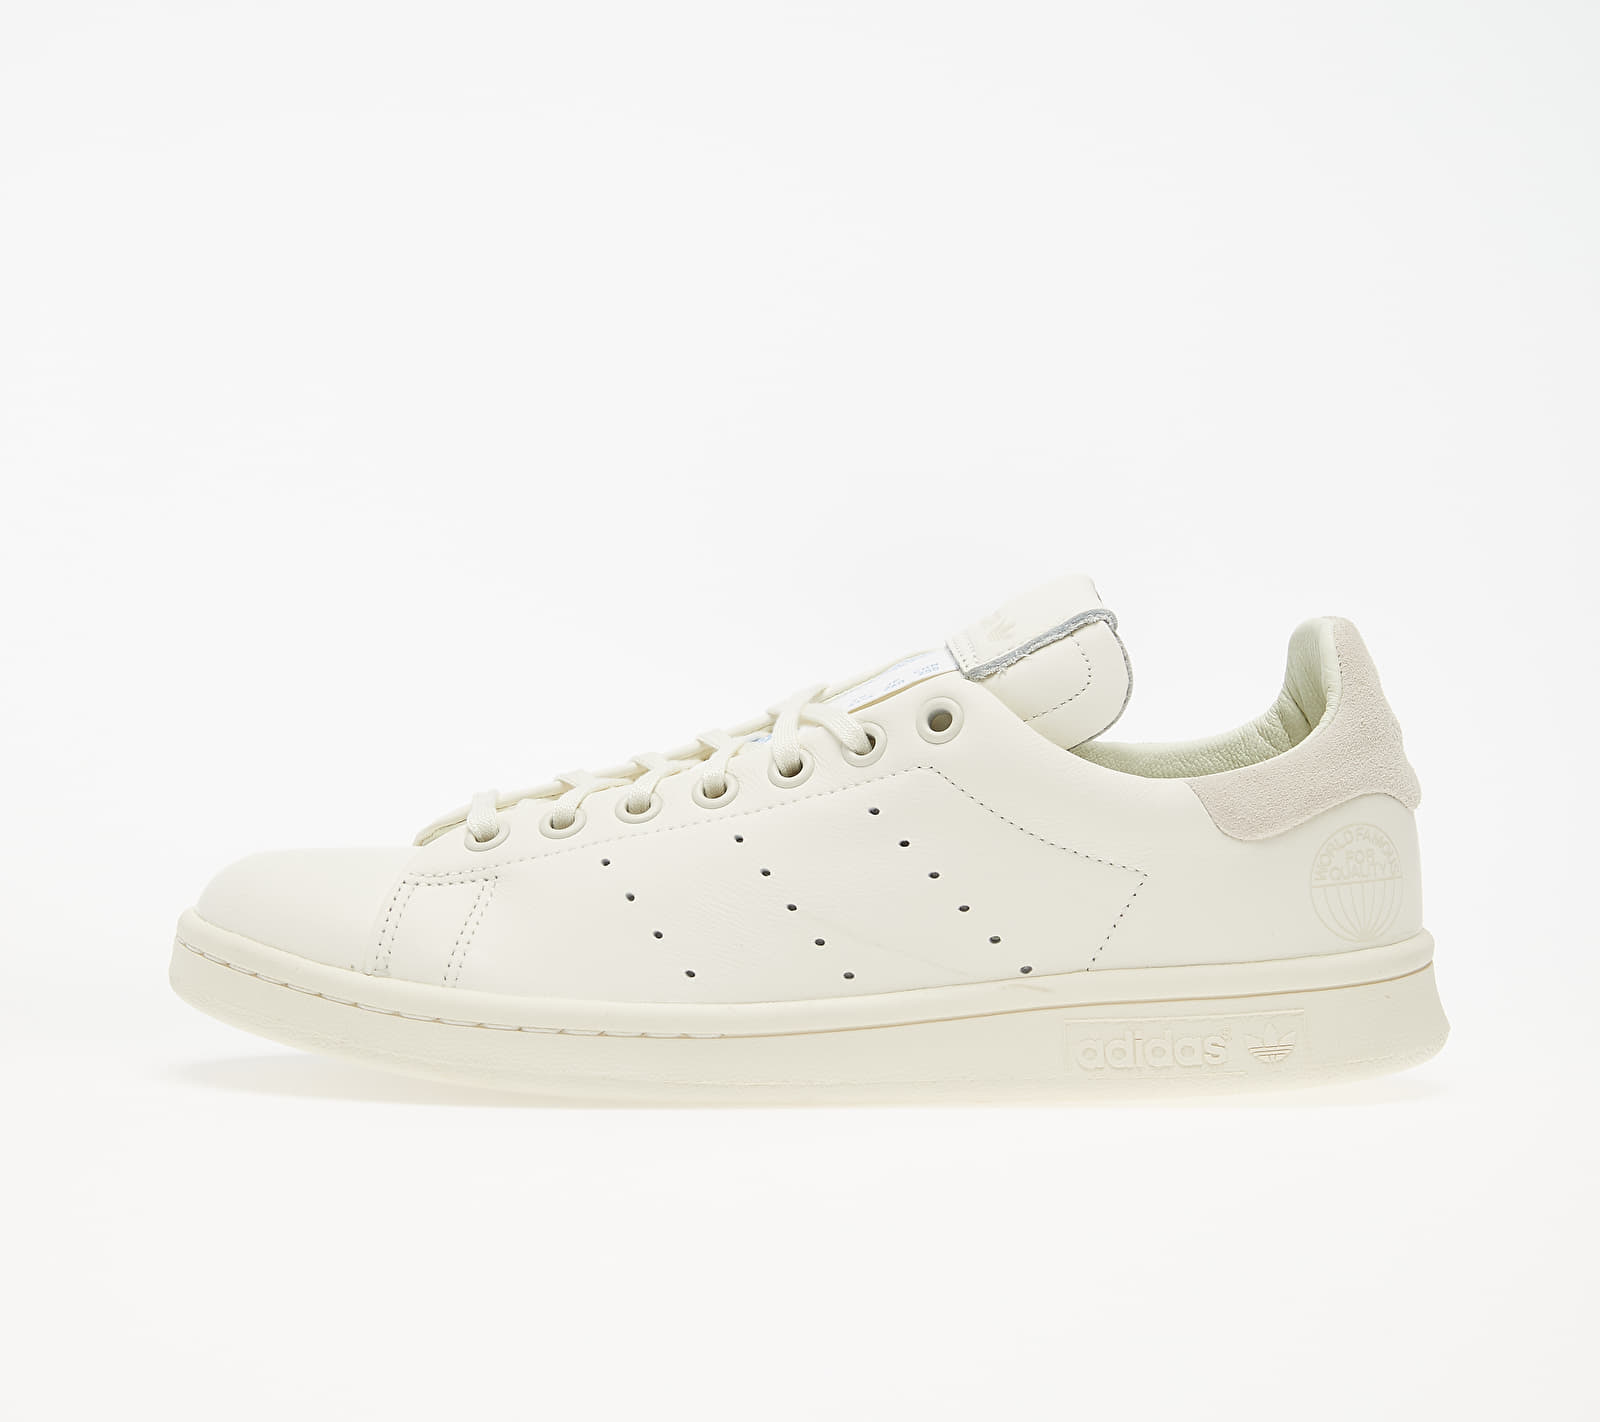 adidas Stan Smith Recon Off White/ Off White/ Off White EUR 39 1/3